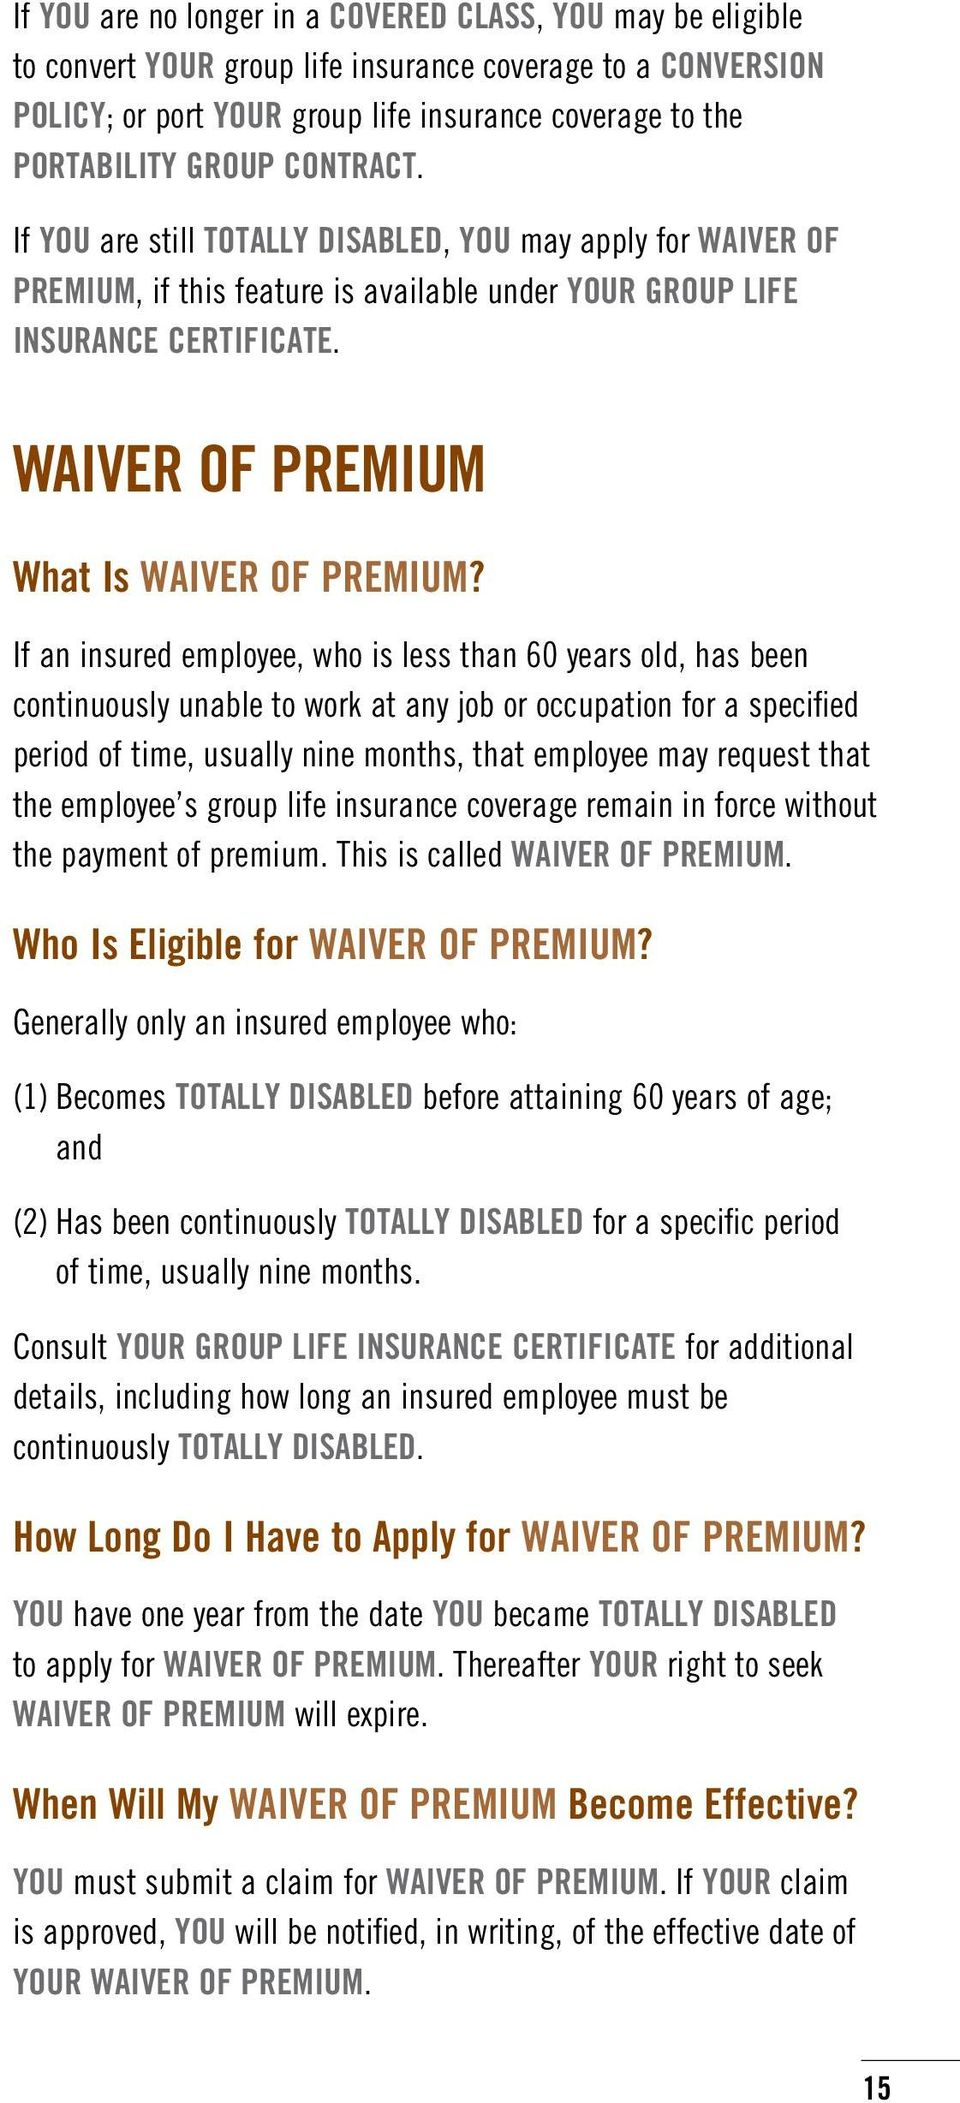 If an insured employee, who is less than 60 years old, has been continuously unable to work at any job or occupation for a specified period of time, usually nine months, that employee may request